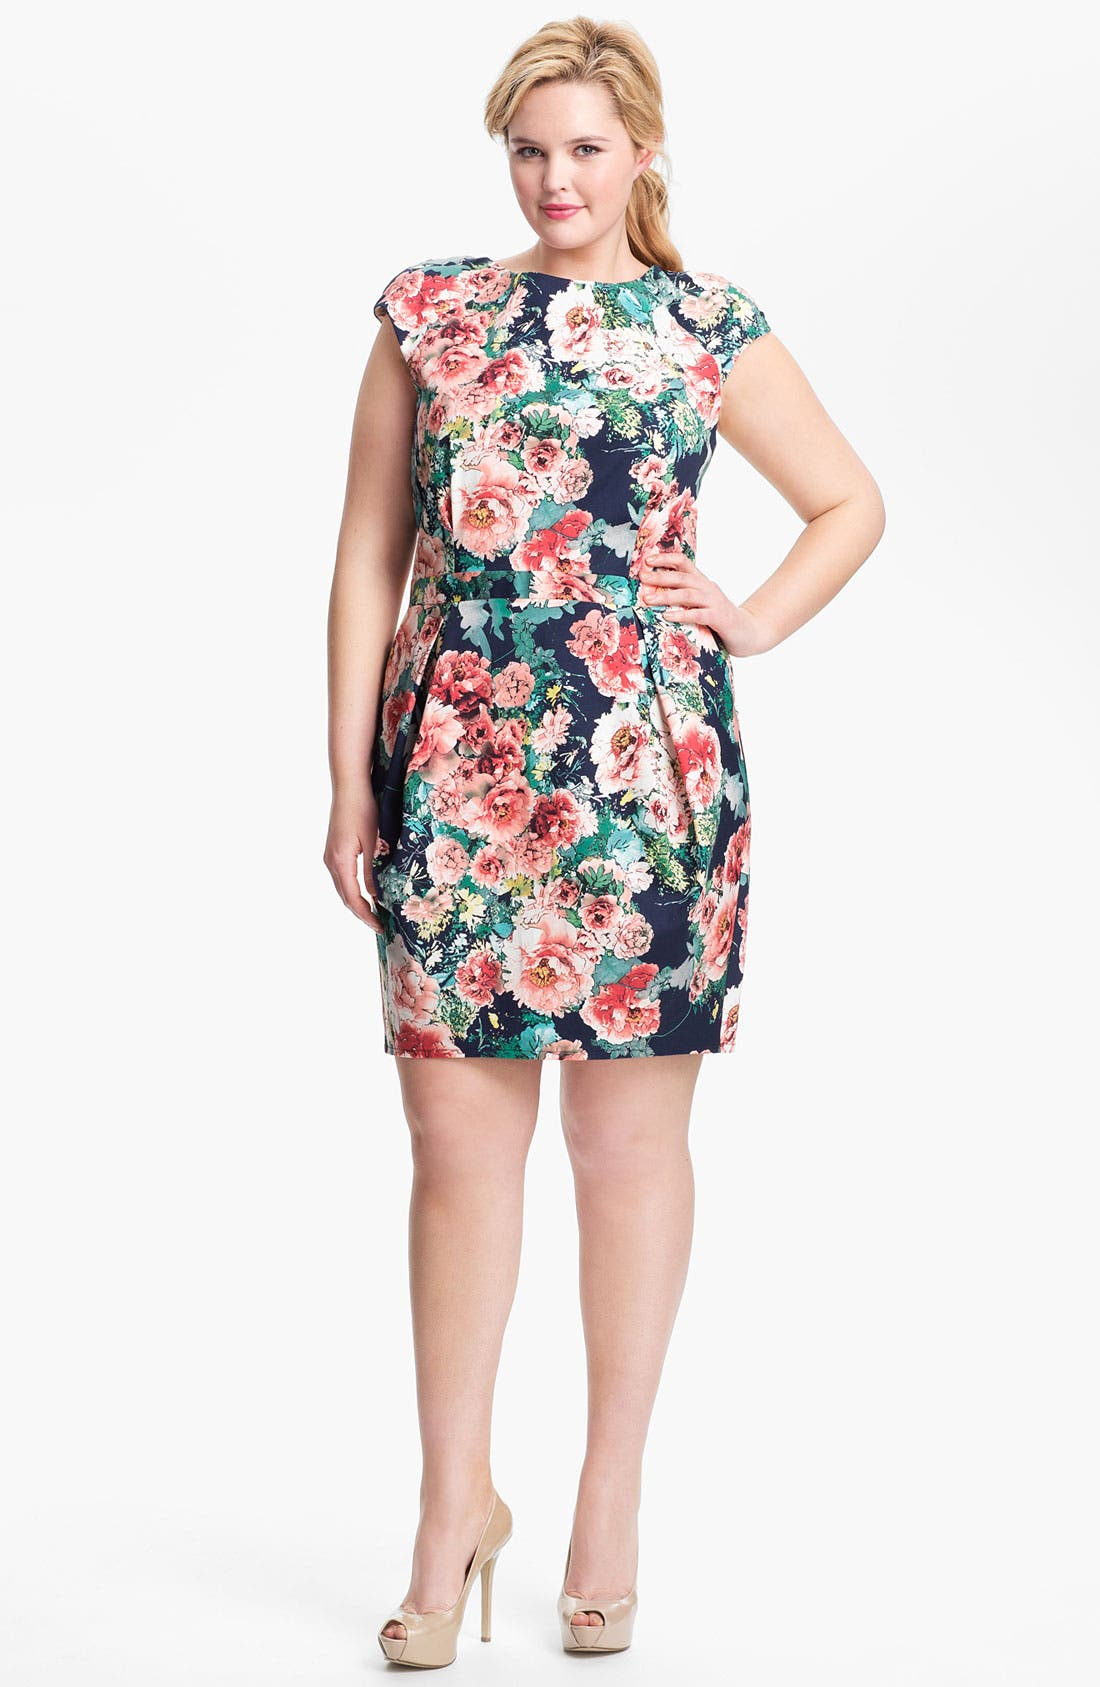 Main Image - A.B.S. by Allen Schwartz Print Sheath Dress (Plus Size) (Online Only)